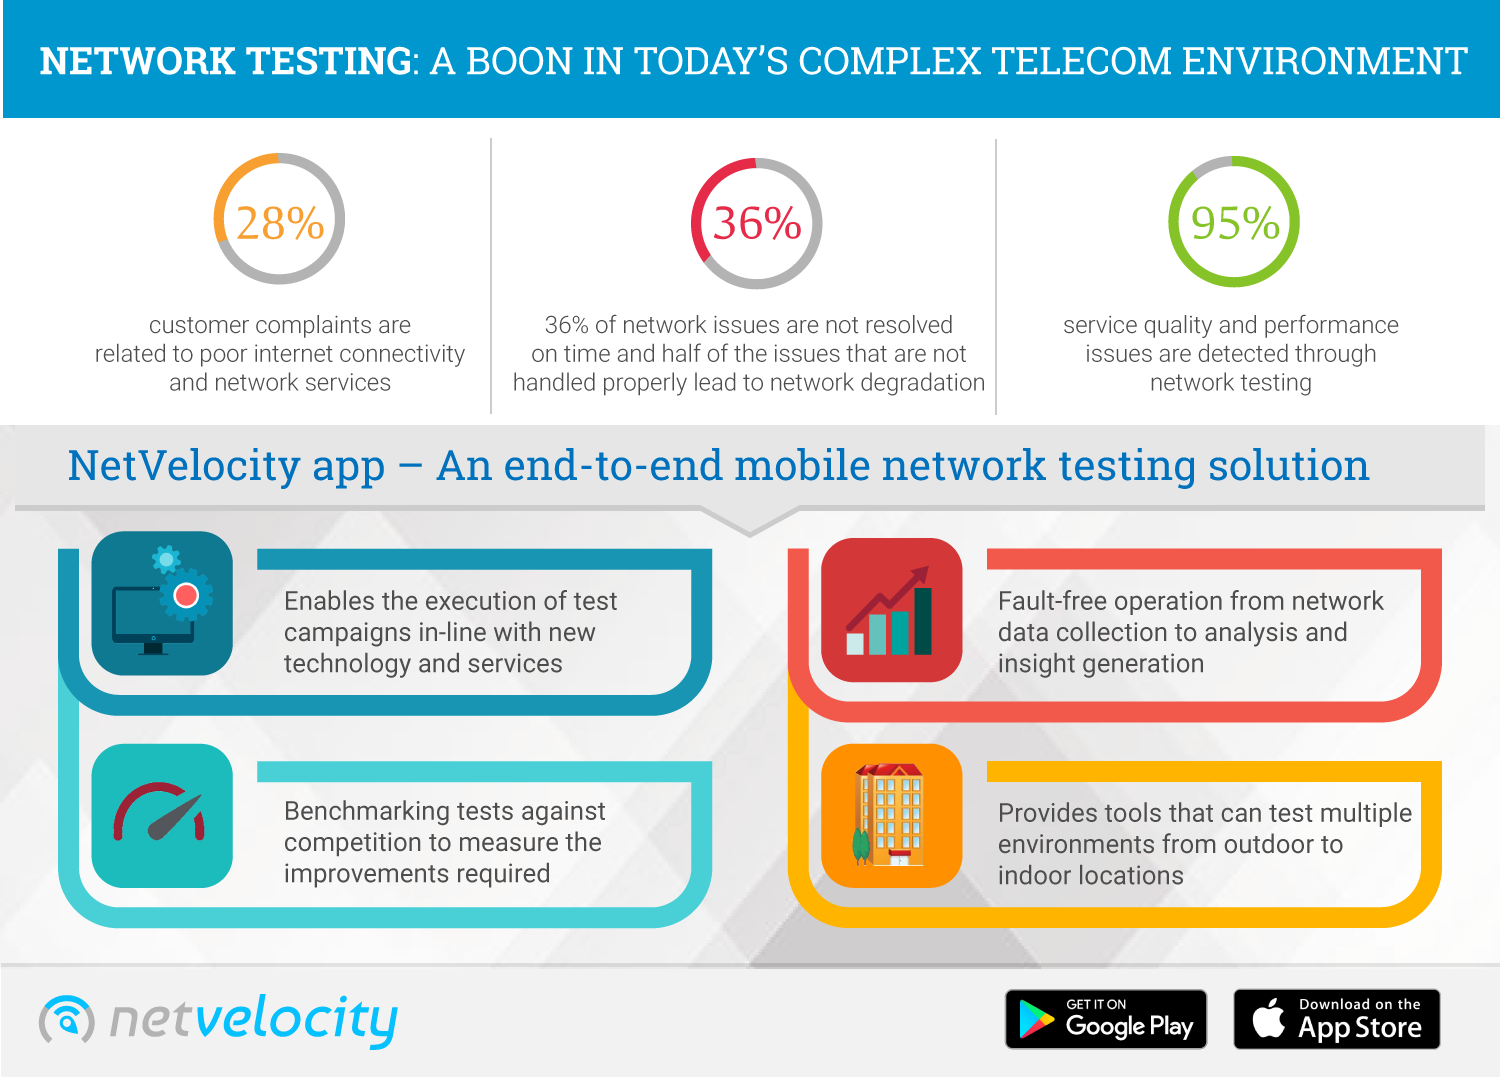 NetVelocity app – An end-to-end mobile network testing solution